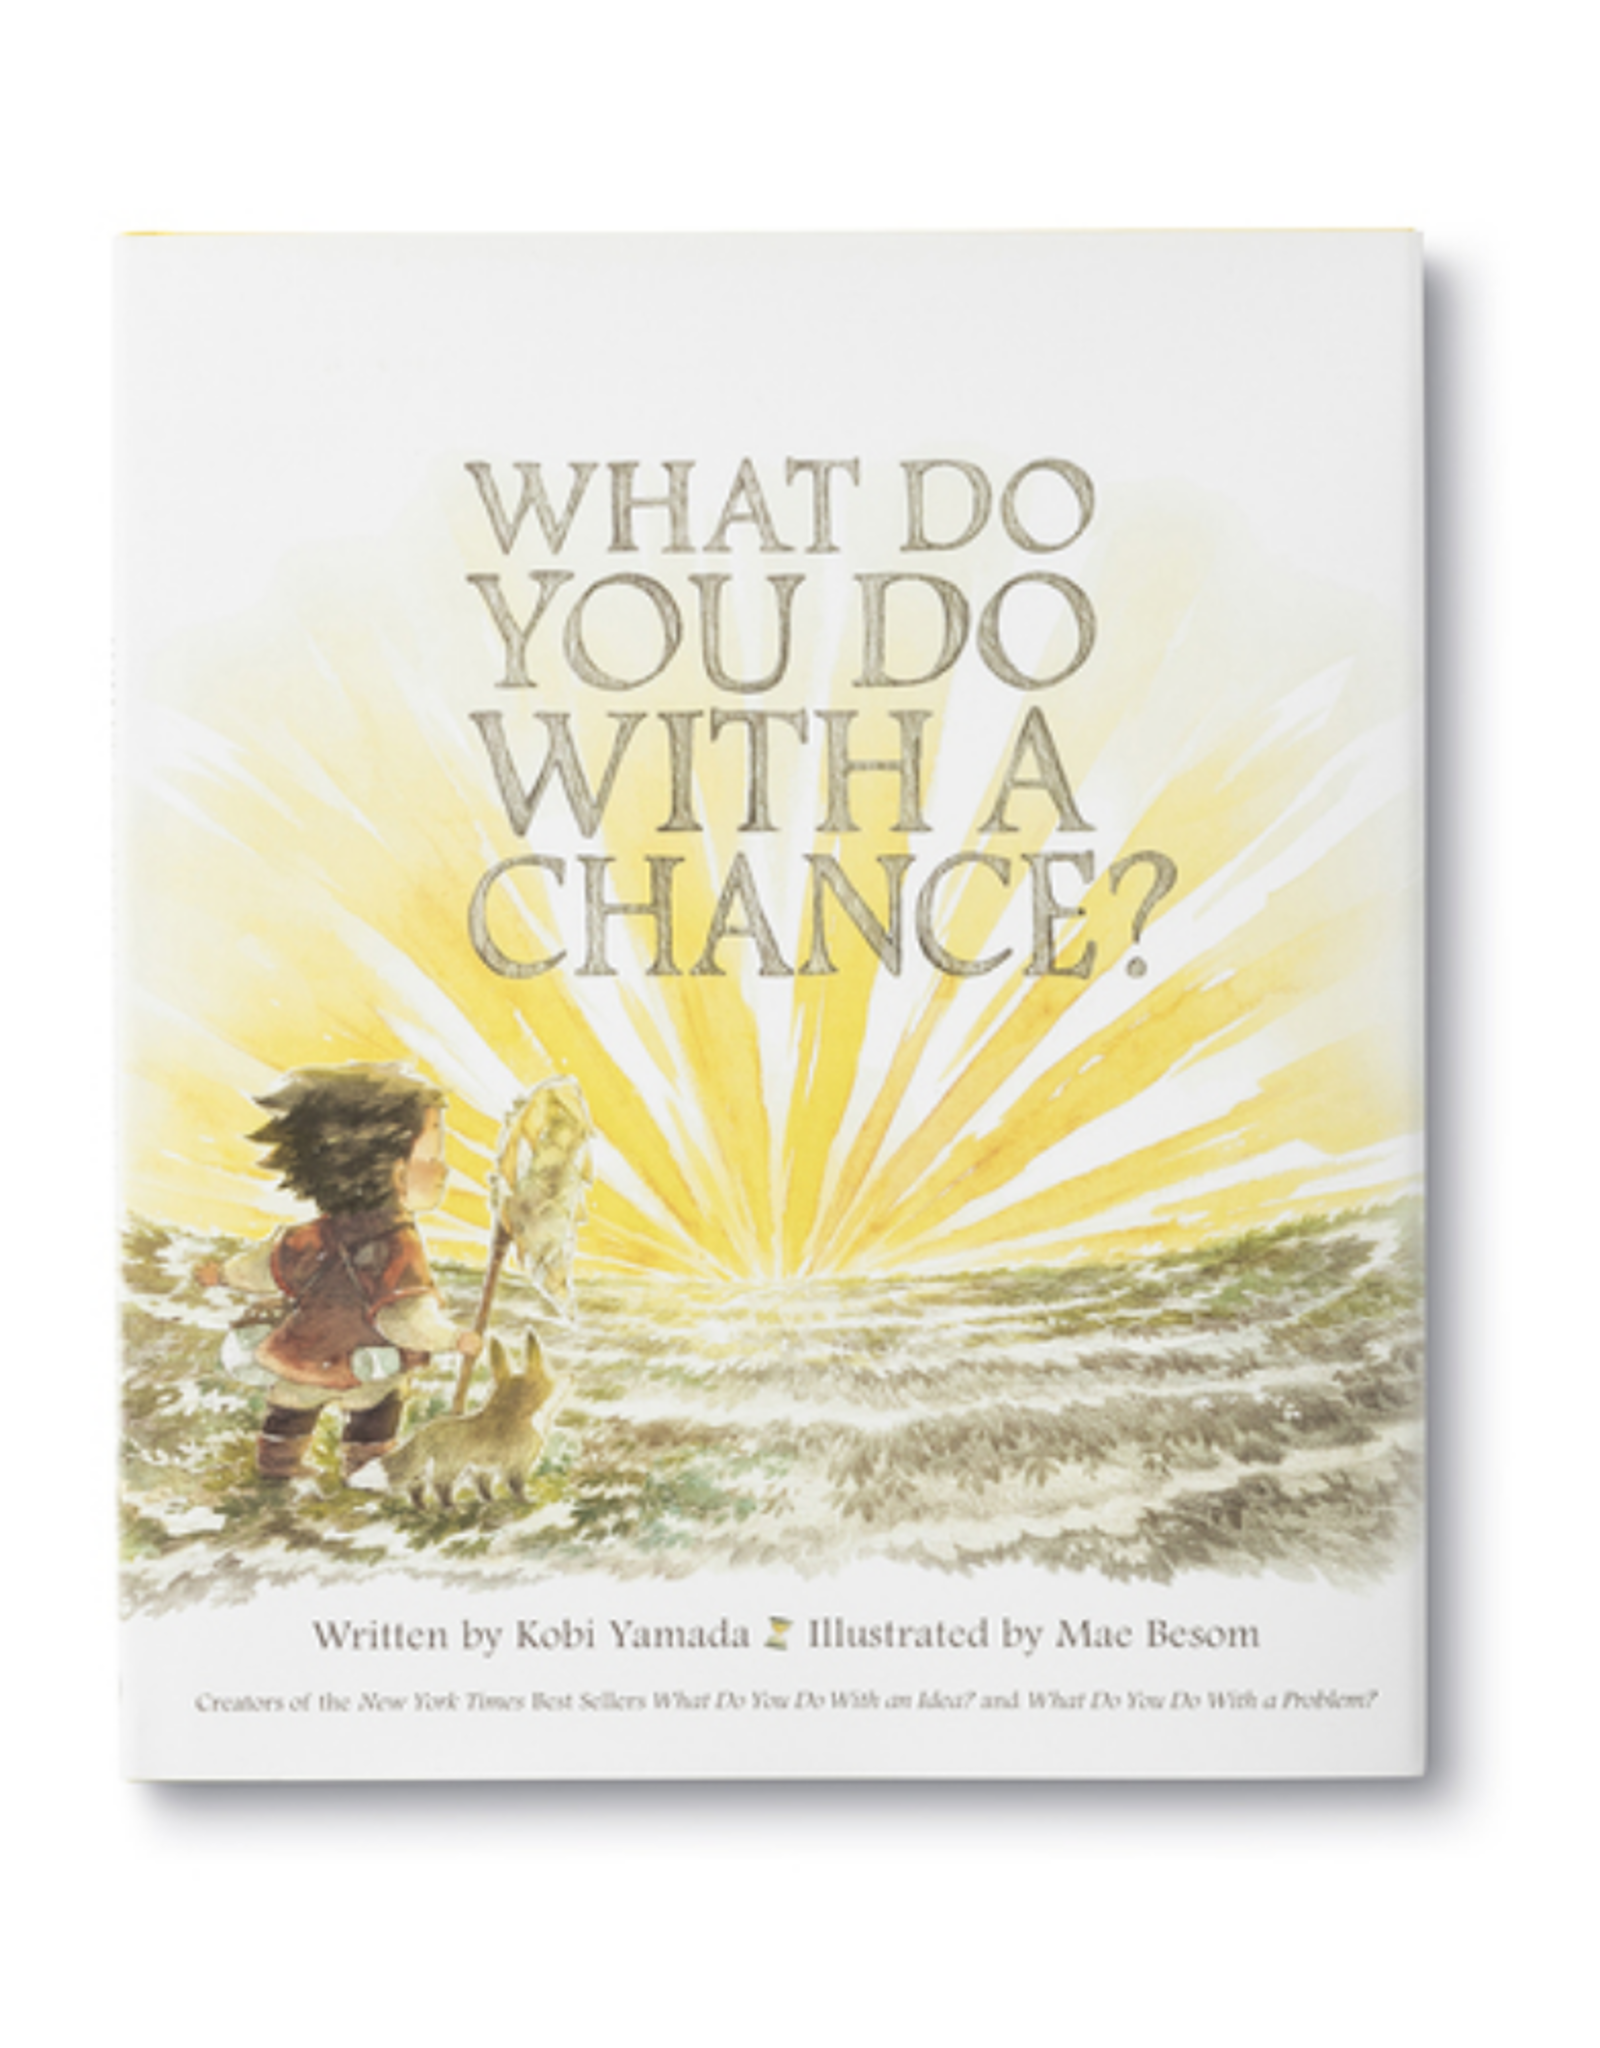 Compendium - Greeting Cards Compendium - What Do You Do With A Chance?